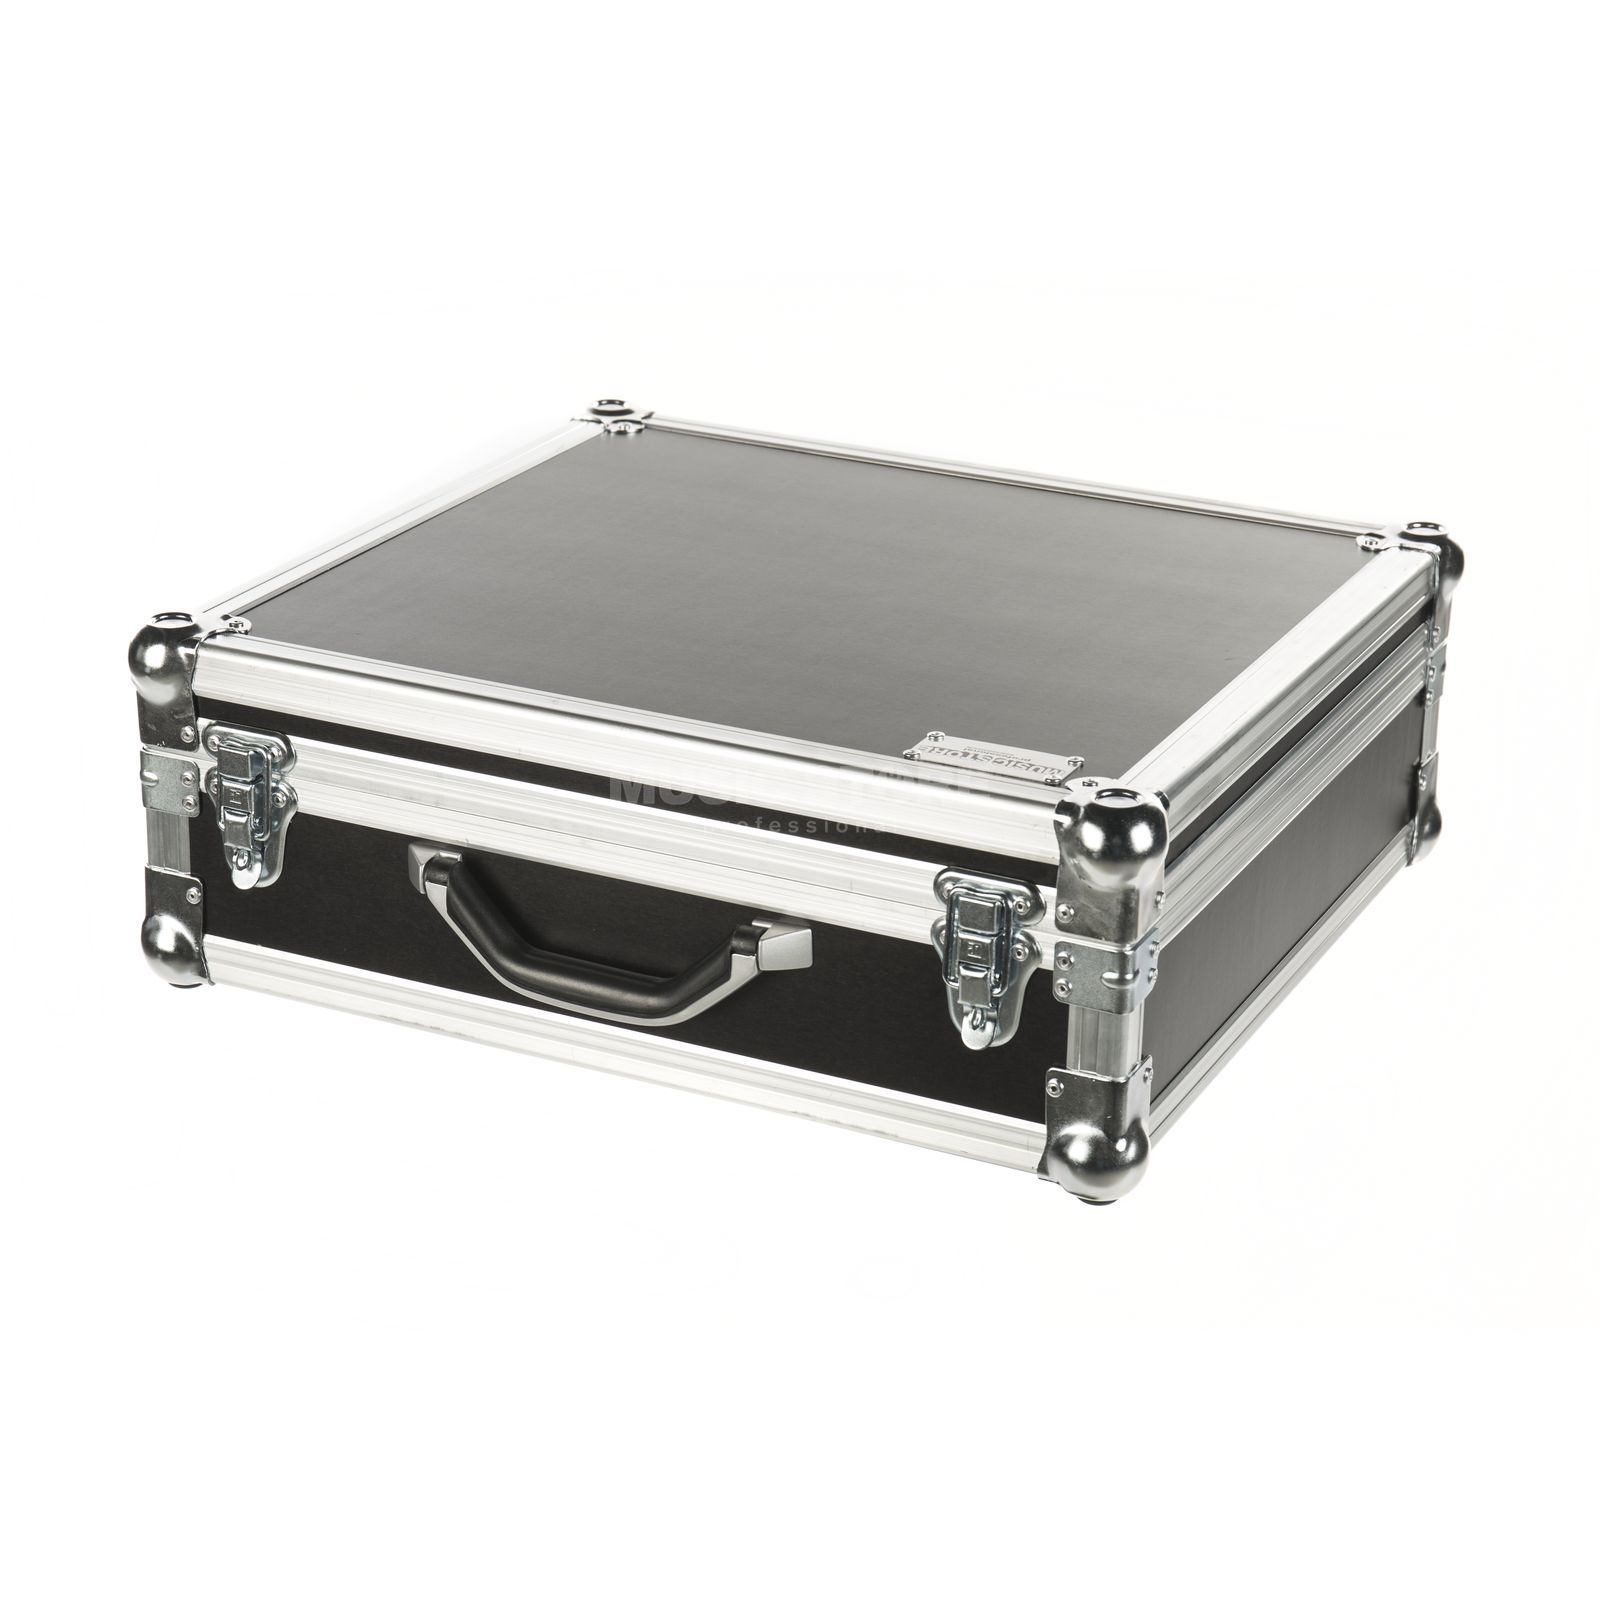 Gäng-Case Universal Mixer Case S PerforLine Product Image